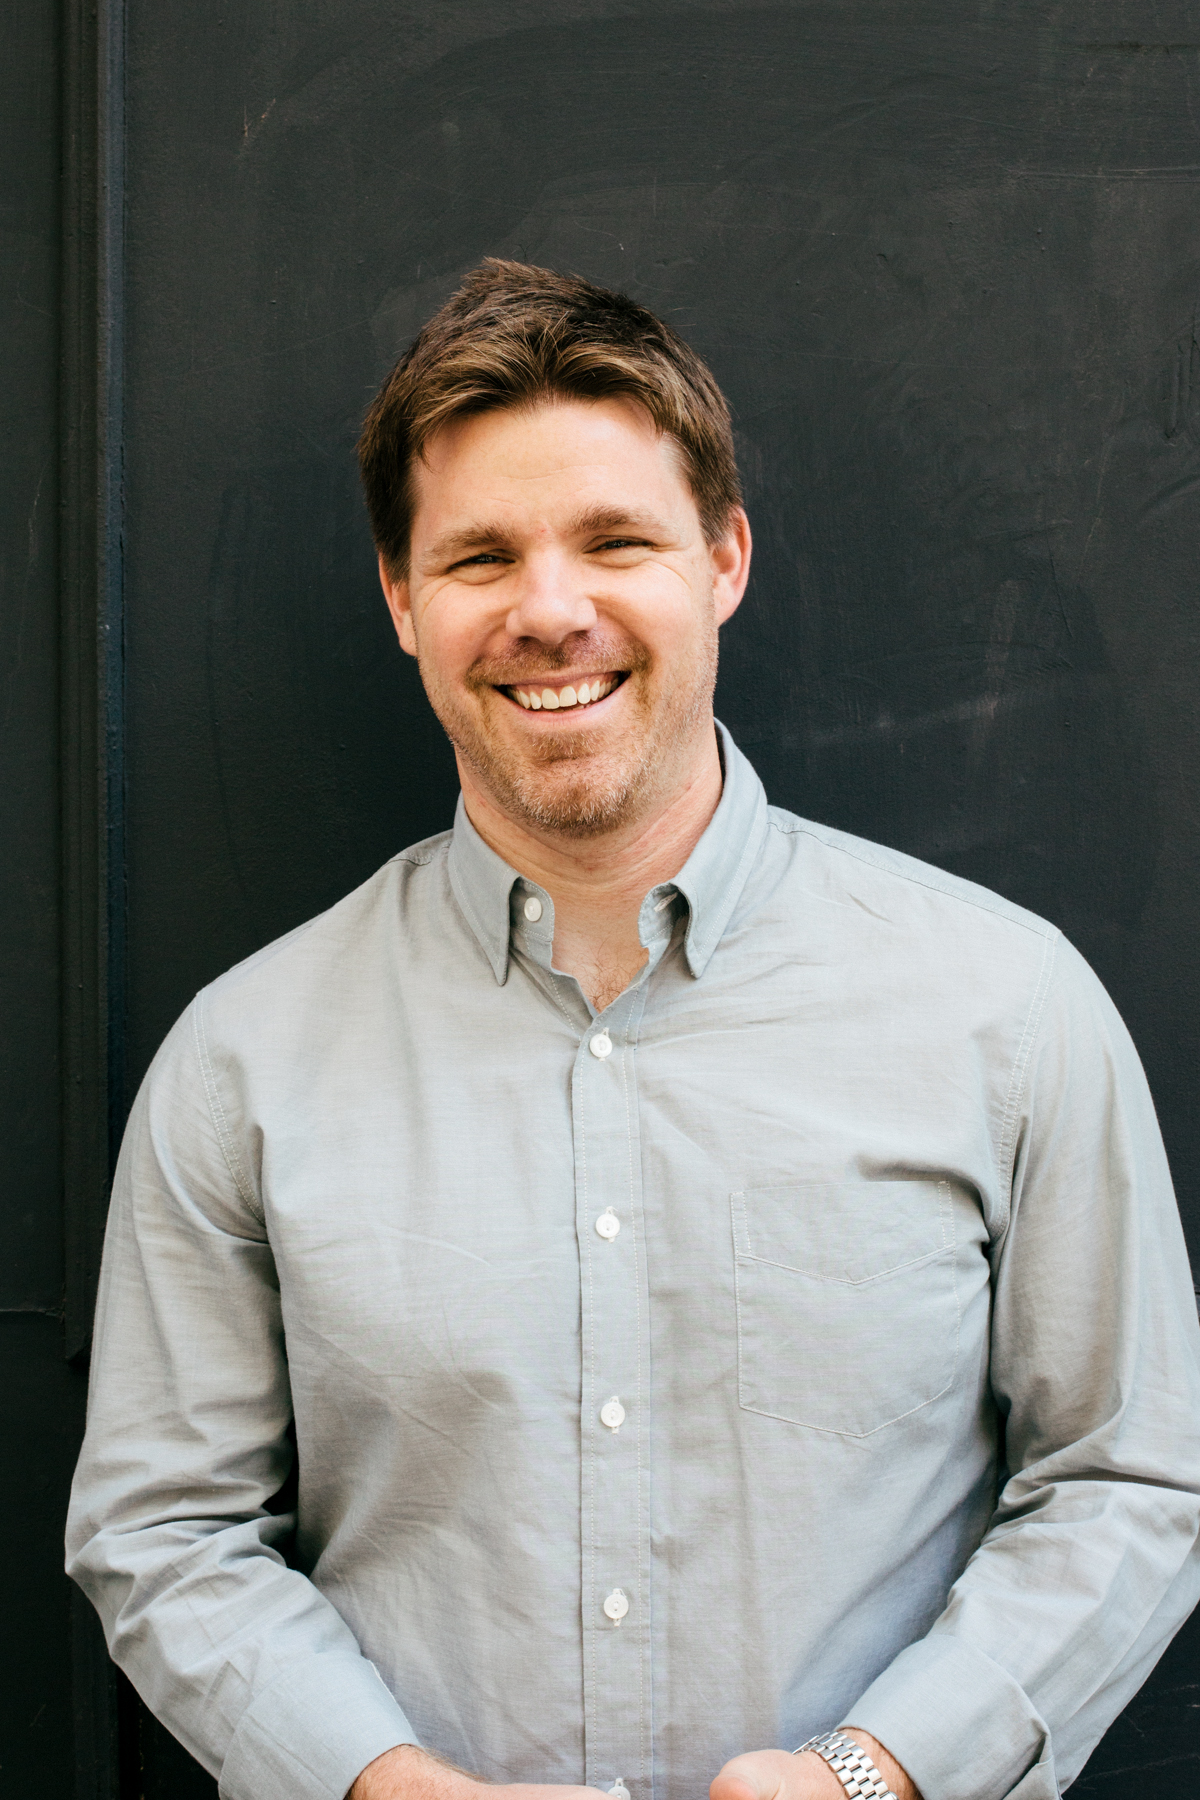 Author and Founder of MACHINE, a strategy and innovation company